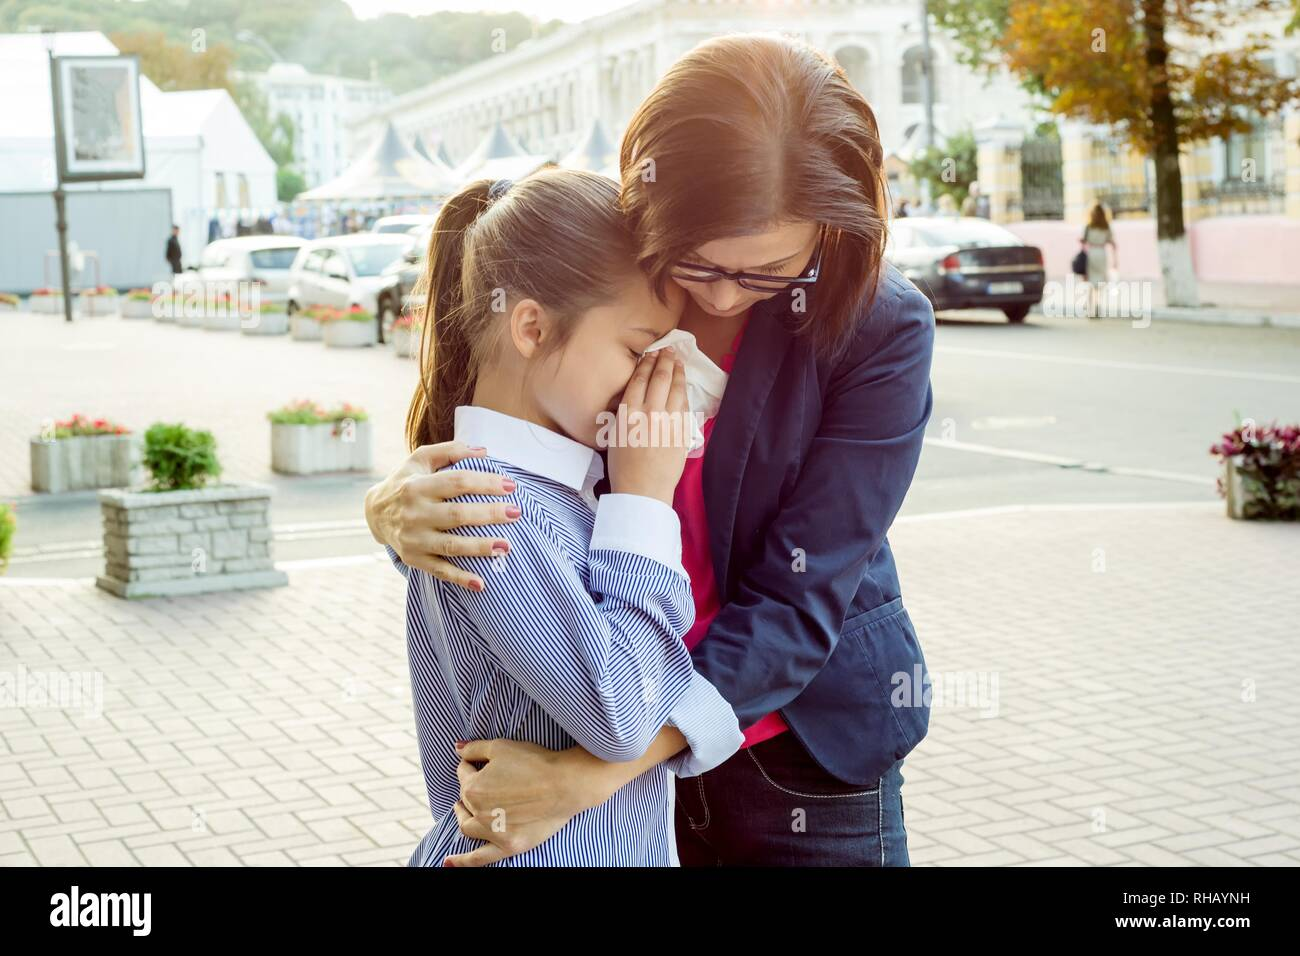 Mother consoling her crying daughter. Urban background - Stock Image